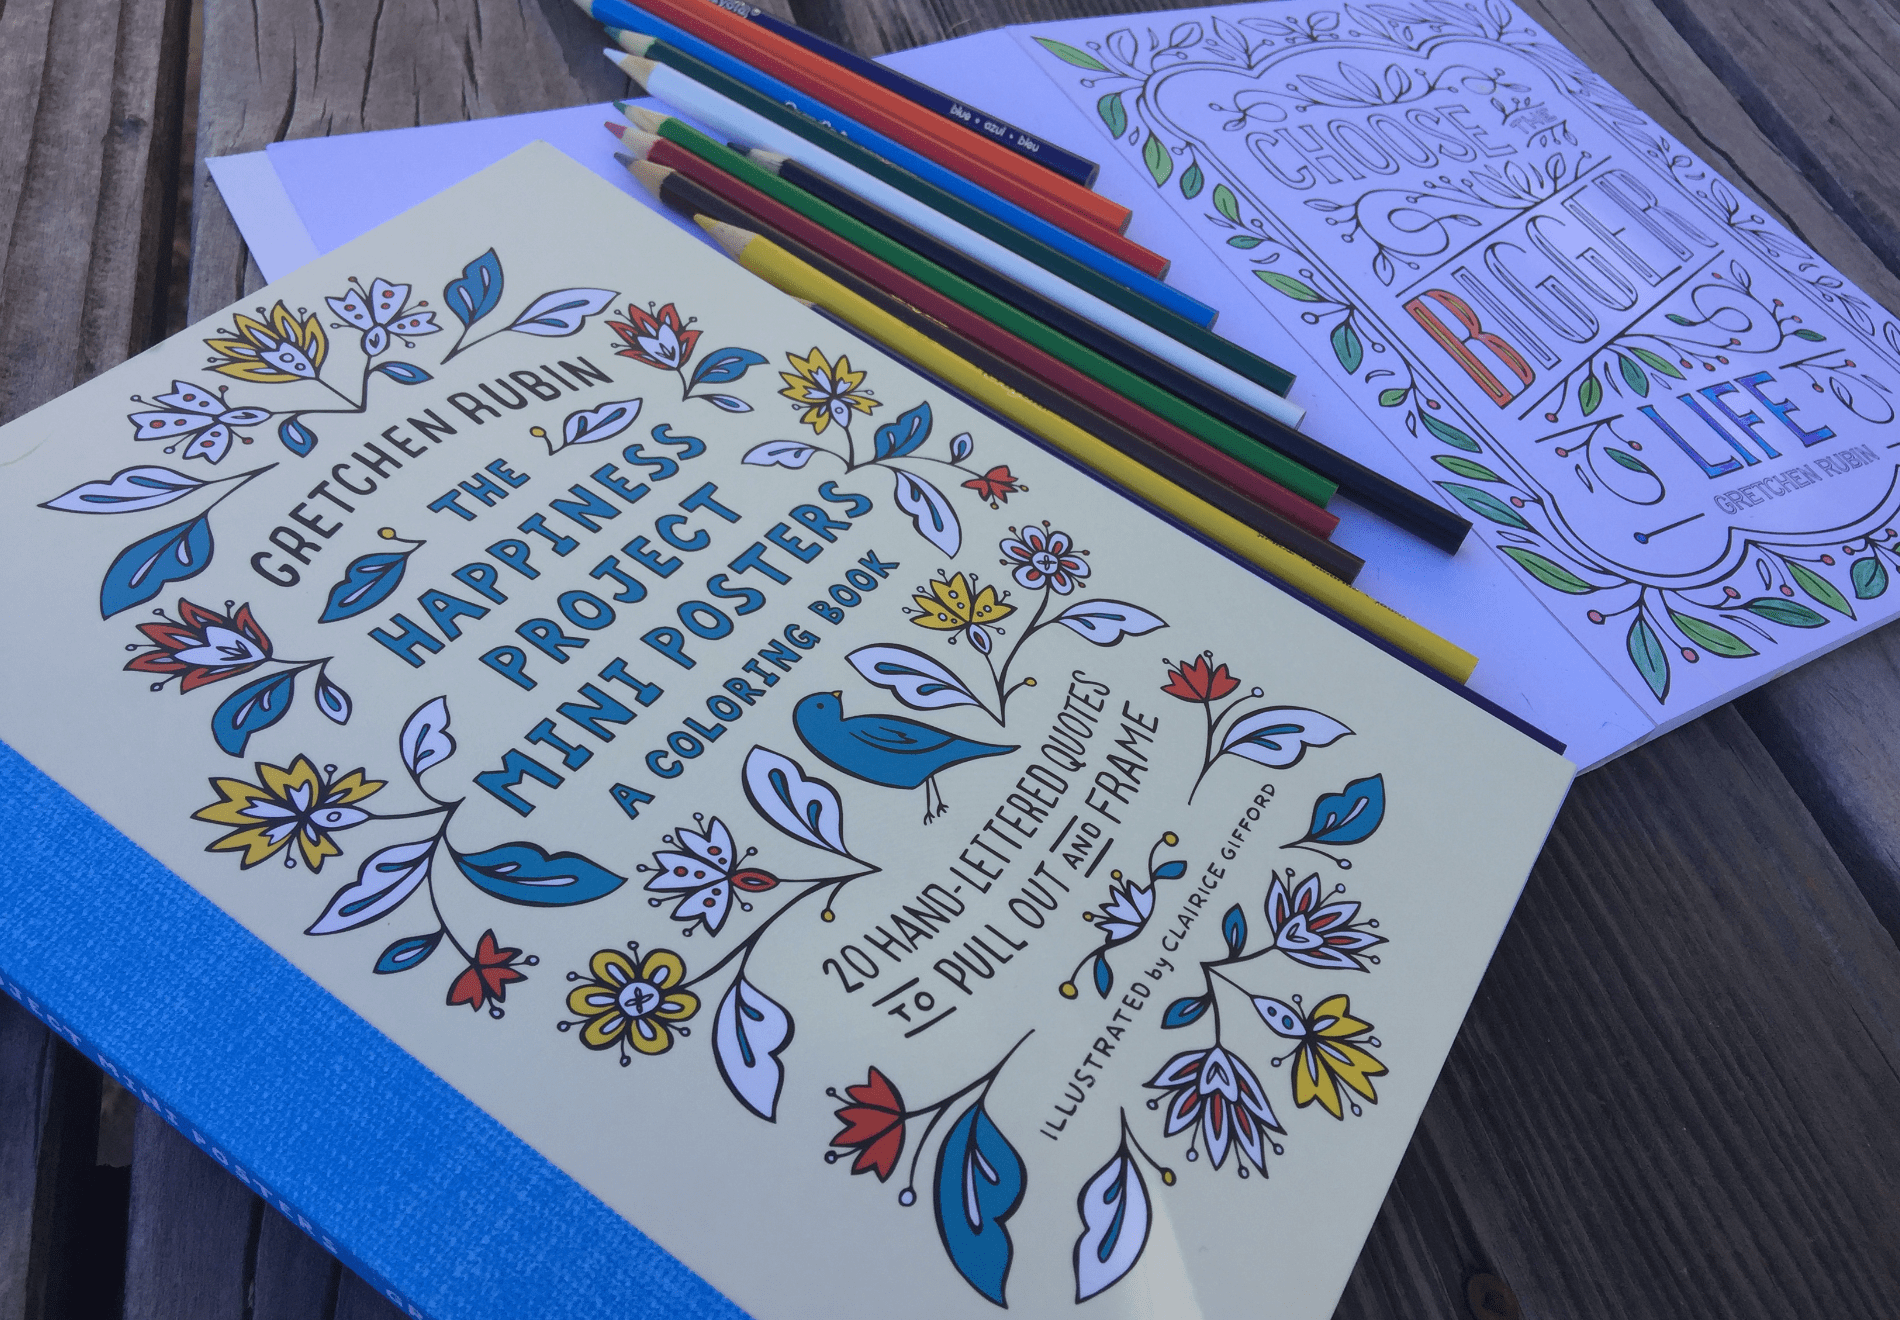 The Coloring Book Project